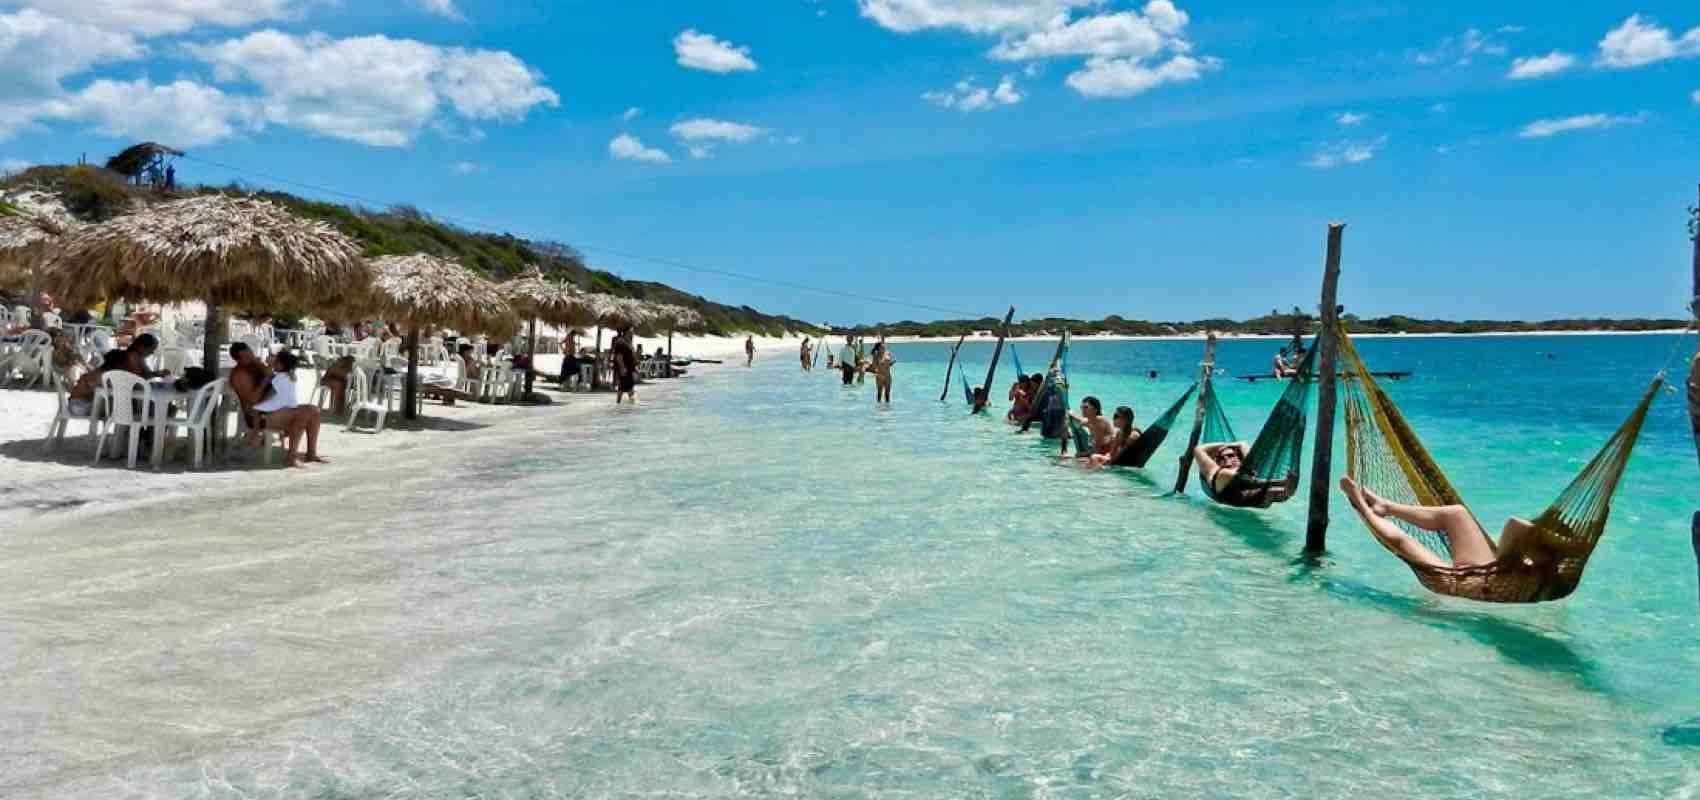 The relaxed style in Jericoacoara, Brazil